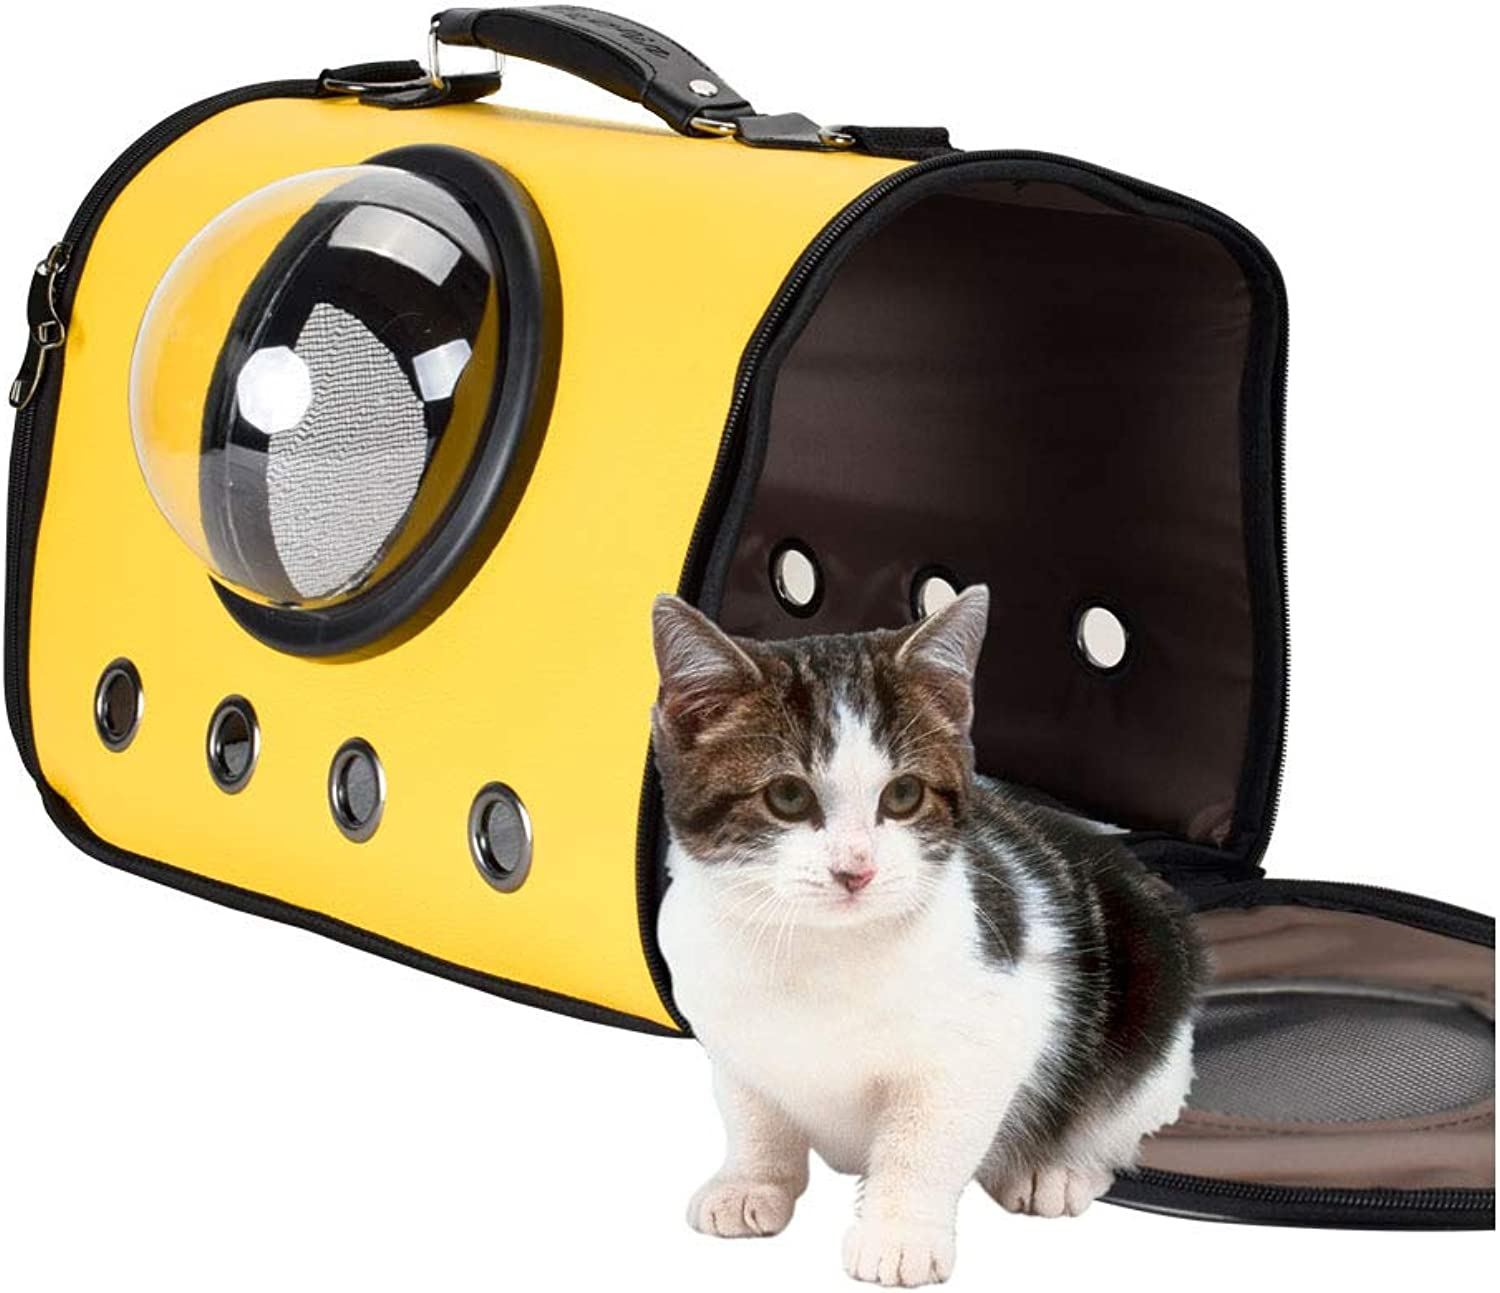 Luxury Cat Travel Carrying Handbag Outdoor Travel Walking PuppyAirline Approved Portable Pet Travel Bags,Yellow